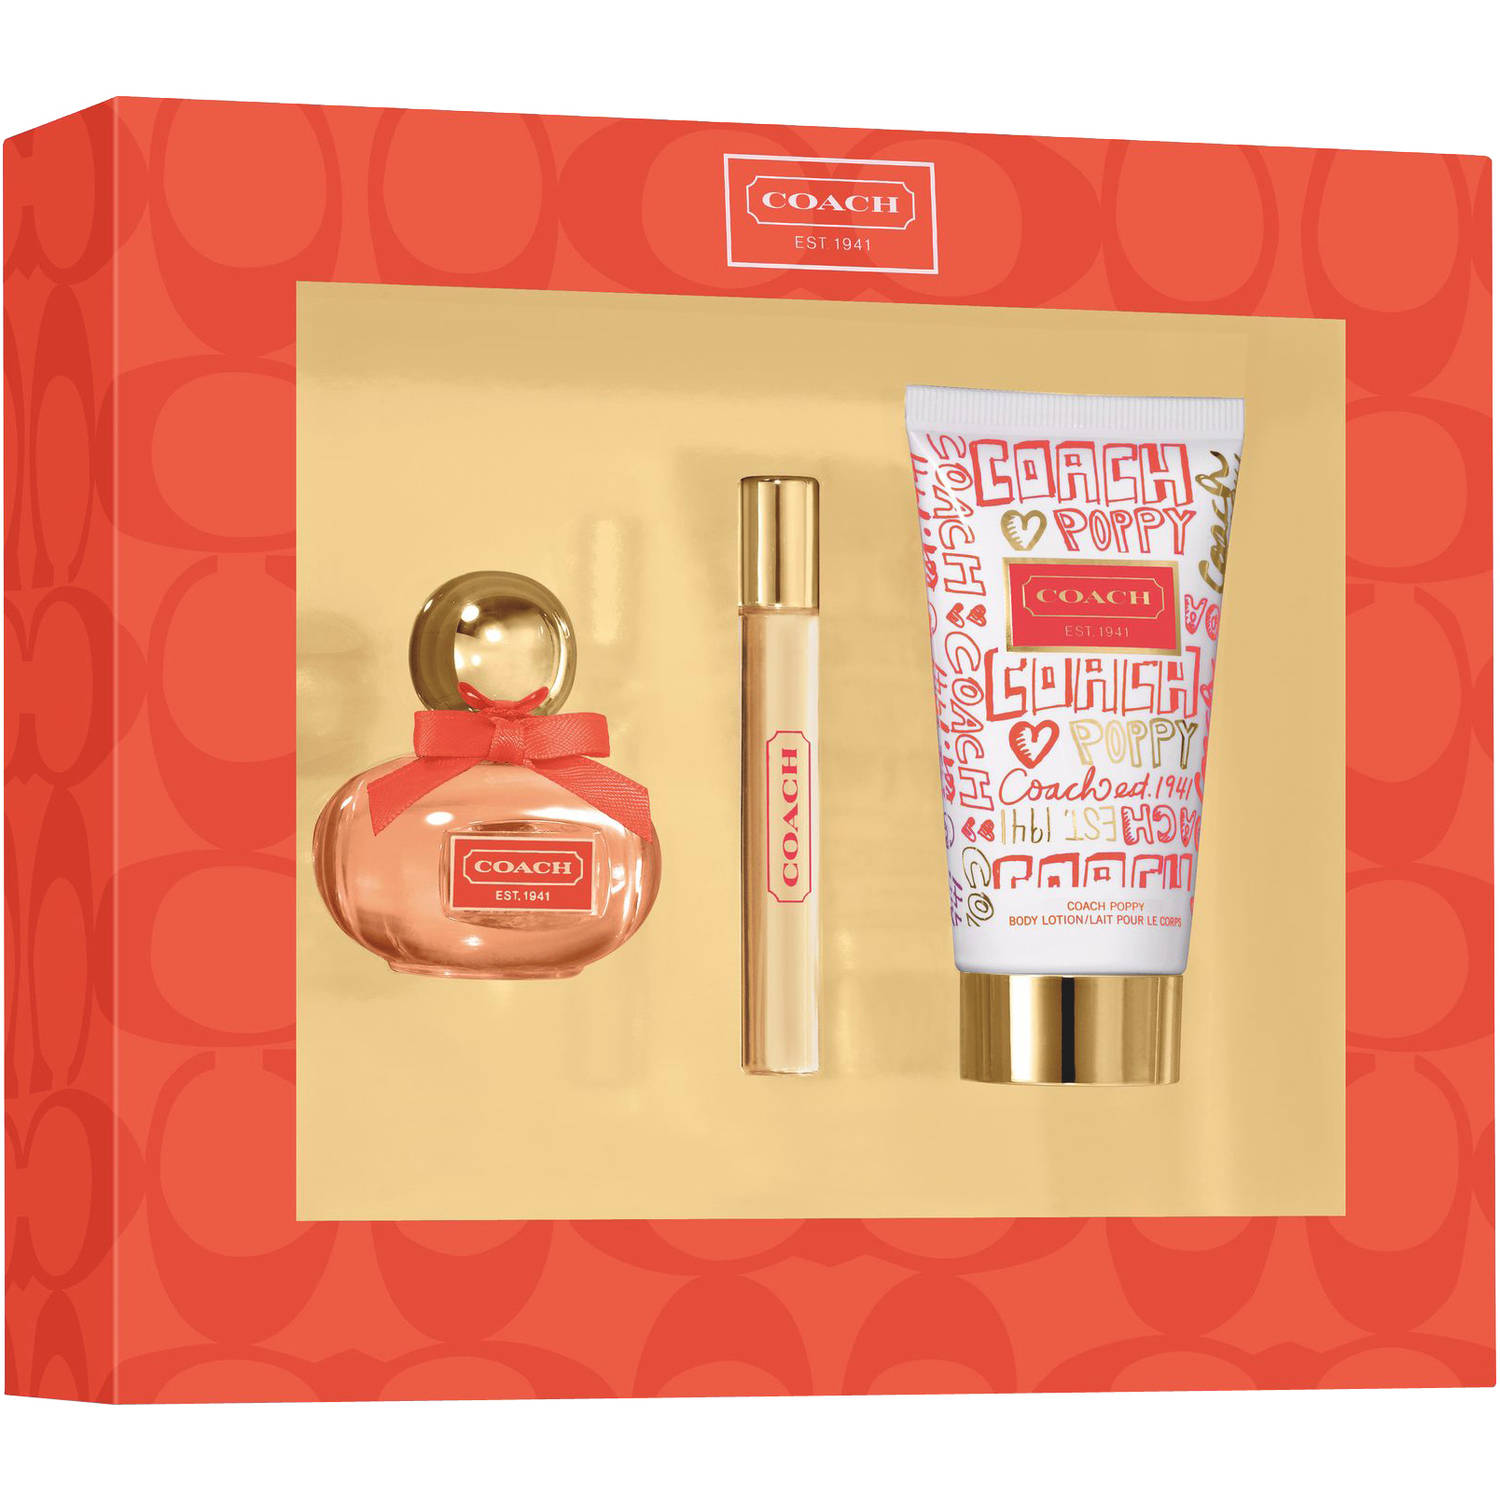 Coach Poppy Fragrance for Women Gift Set, 3 pc